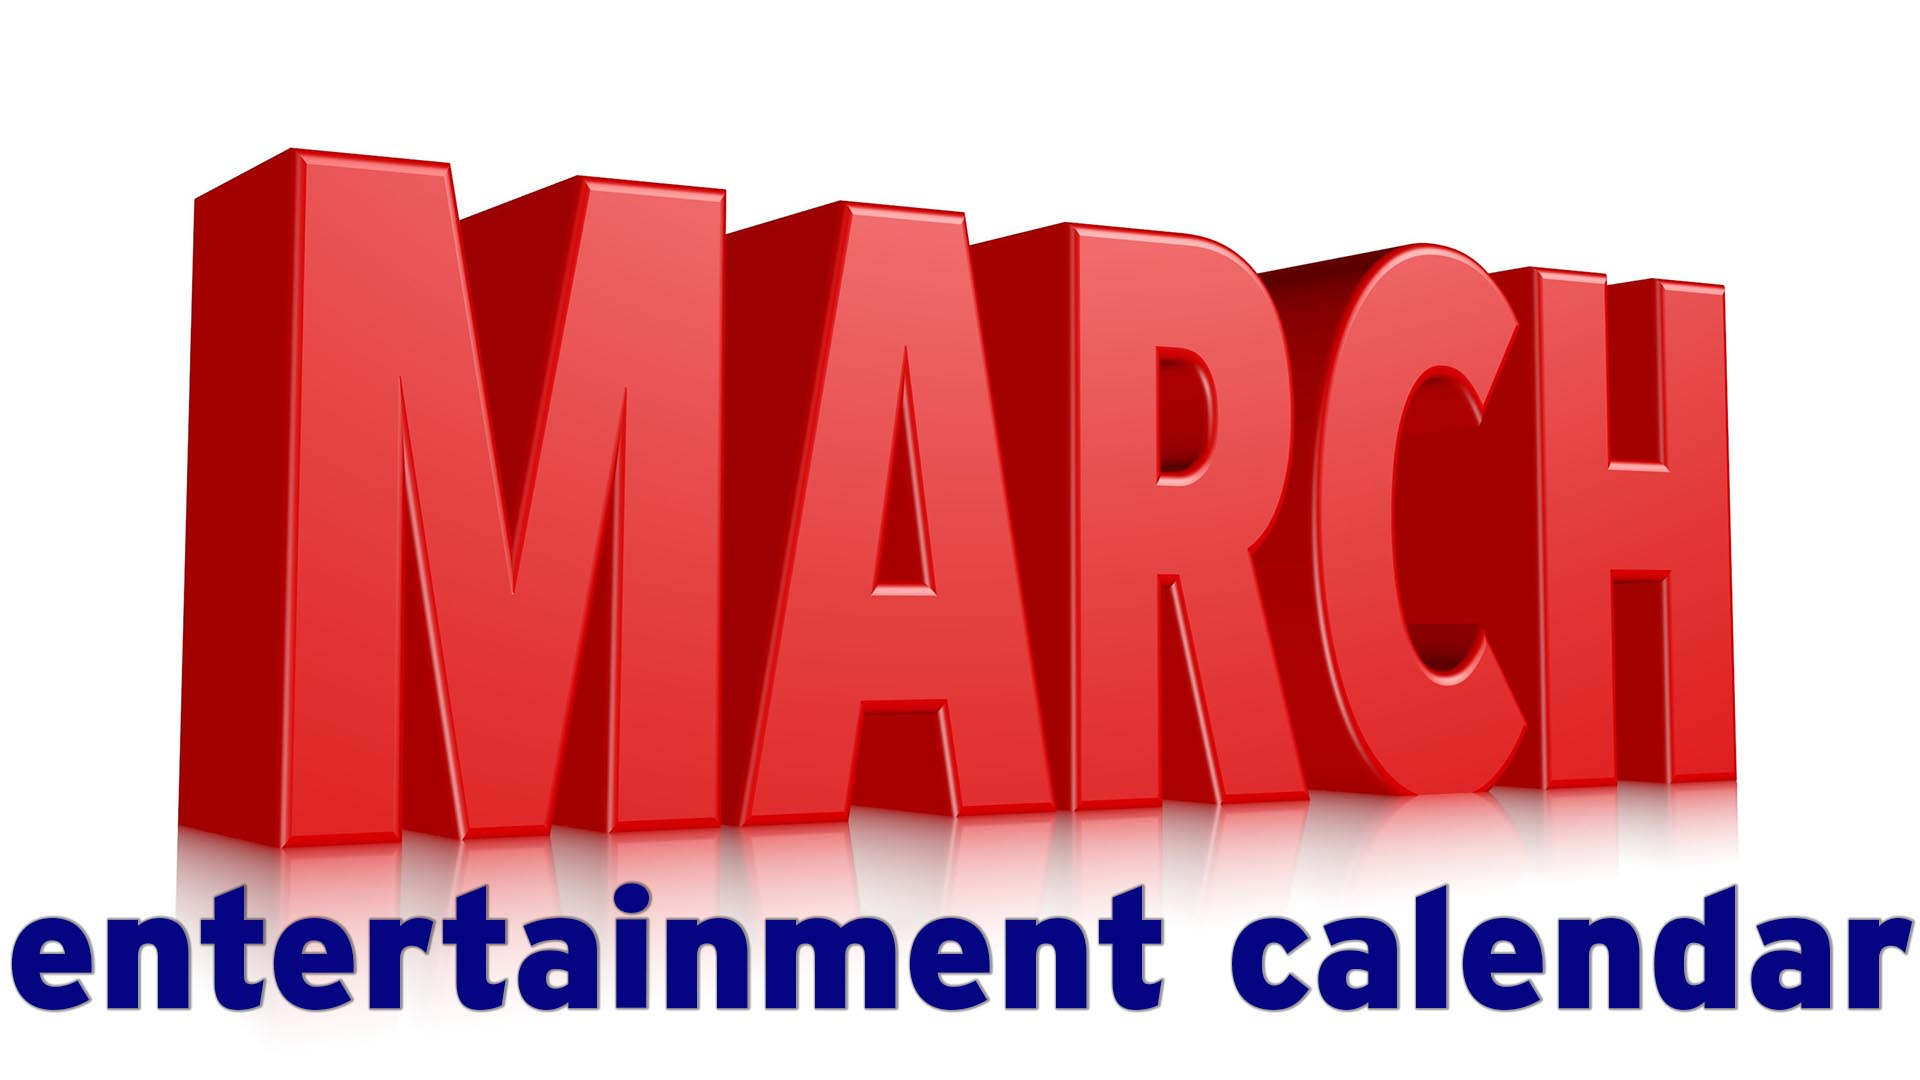 March entertainment calendar: Globetrotters, Beach Boys, SXSanJac, 'Steel Magnolias,' more